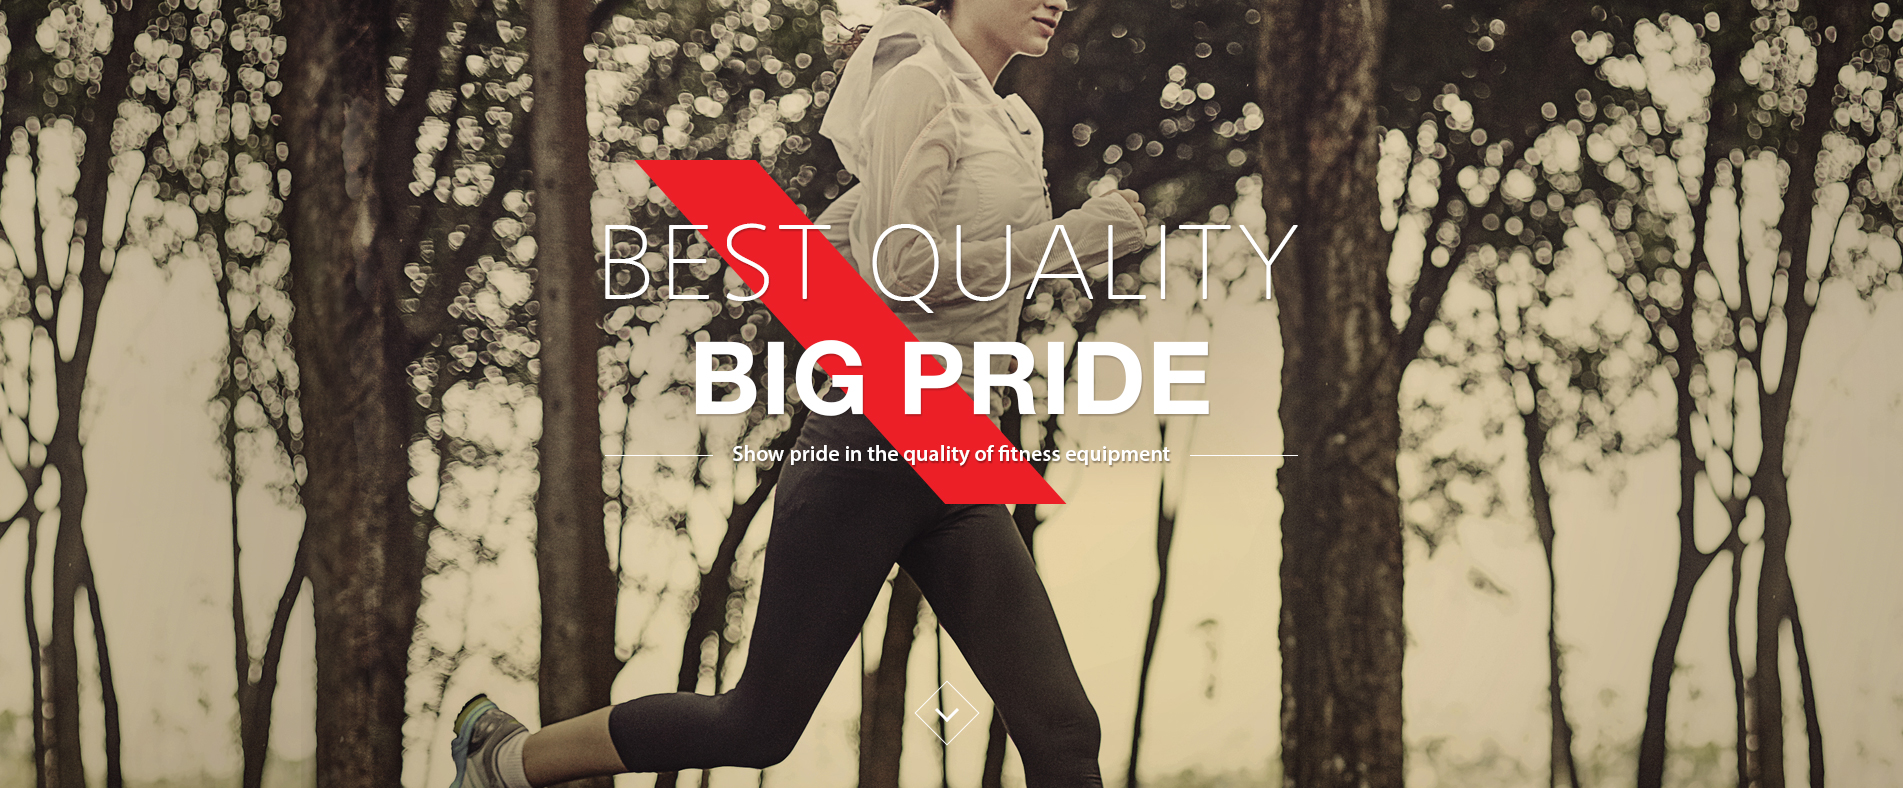 BEST QUALITY BIG PRIDE